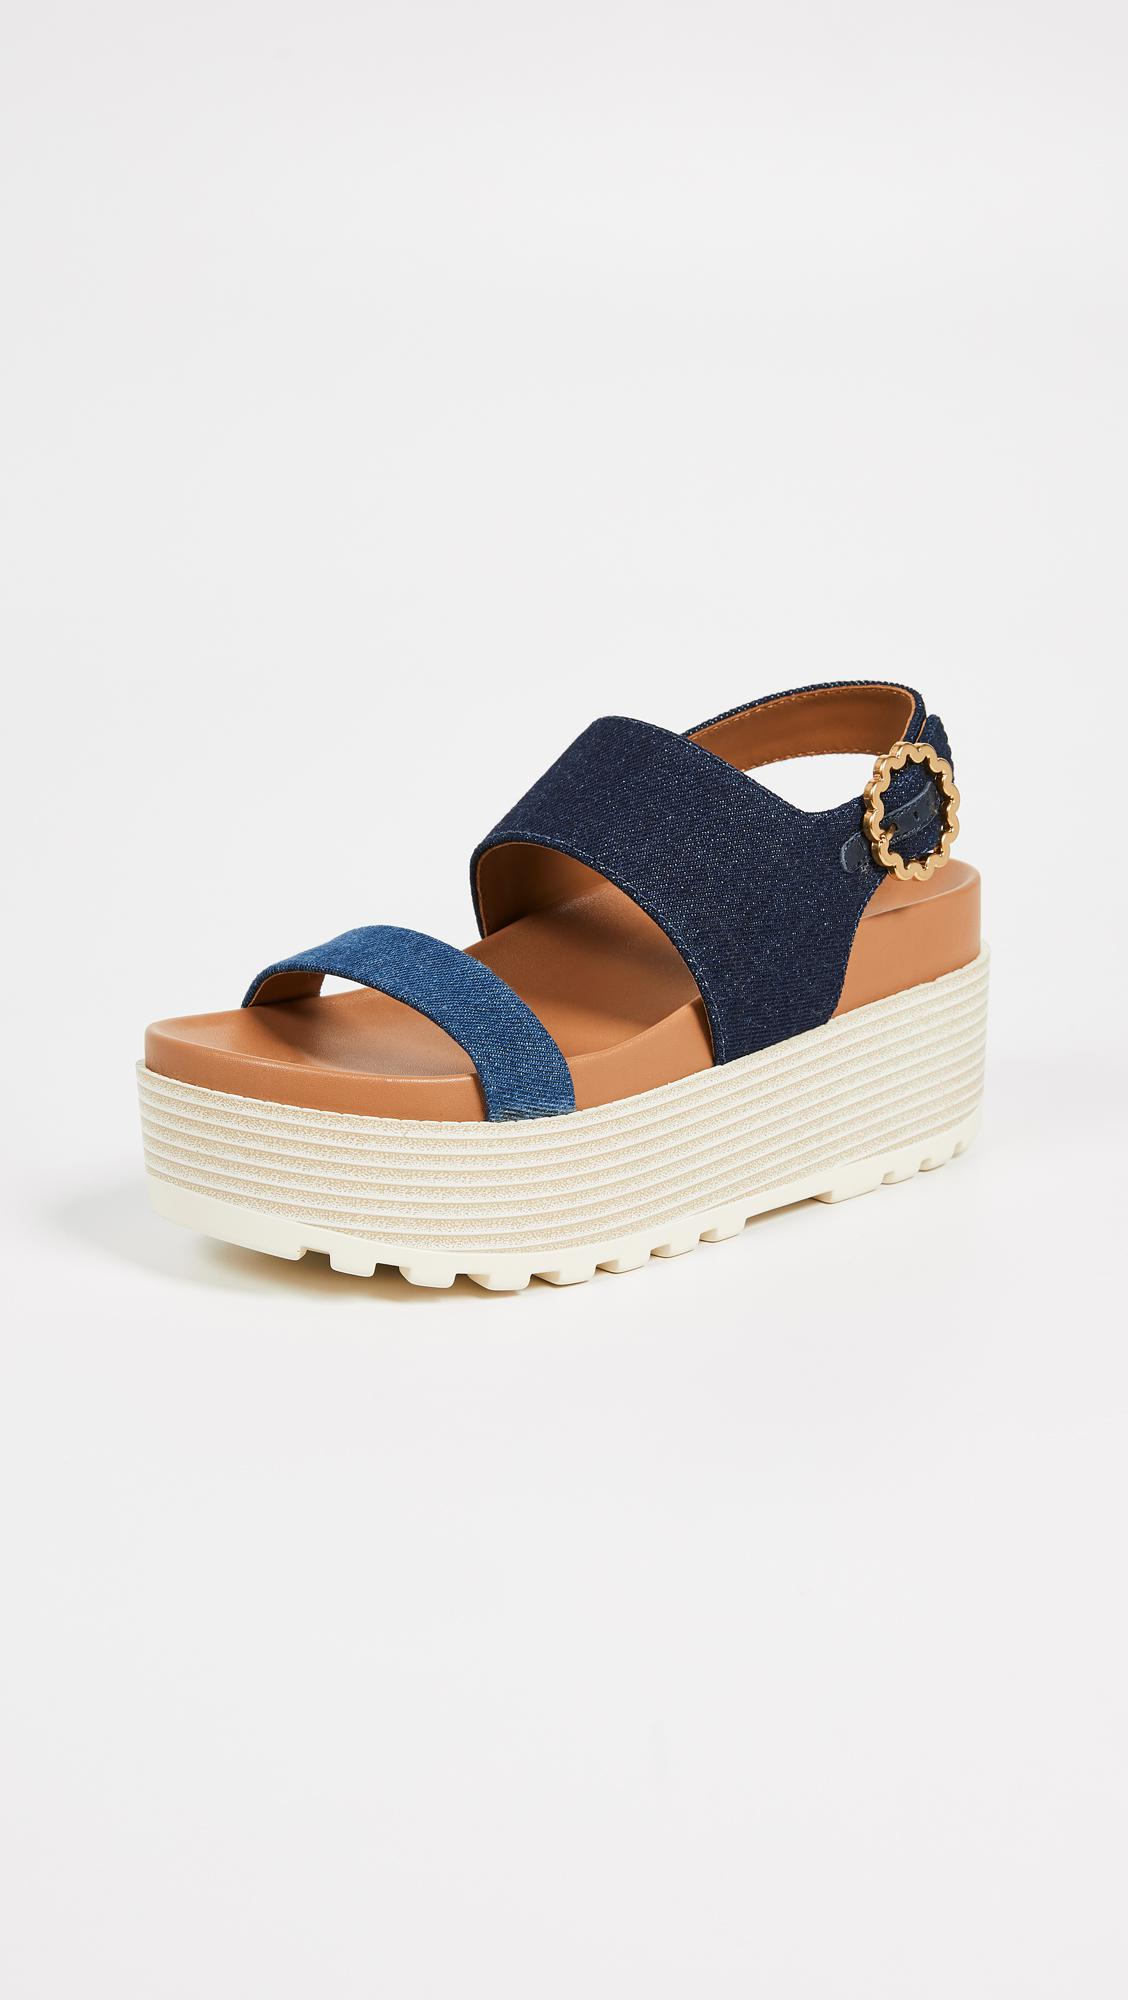 7de8c9b5ec11b7 Lyst - See By Chloé Jenna Platform Sandals in Blue